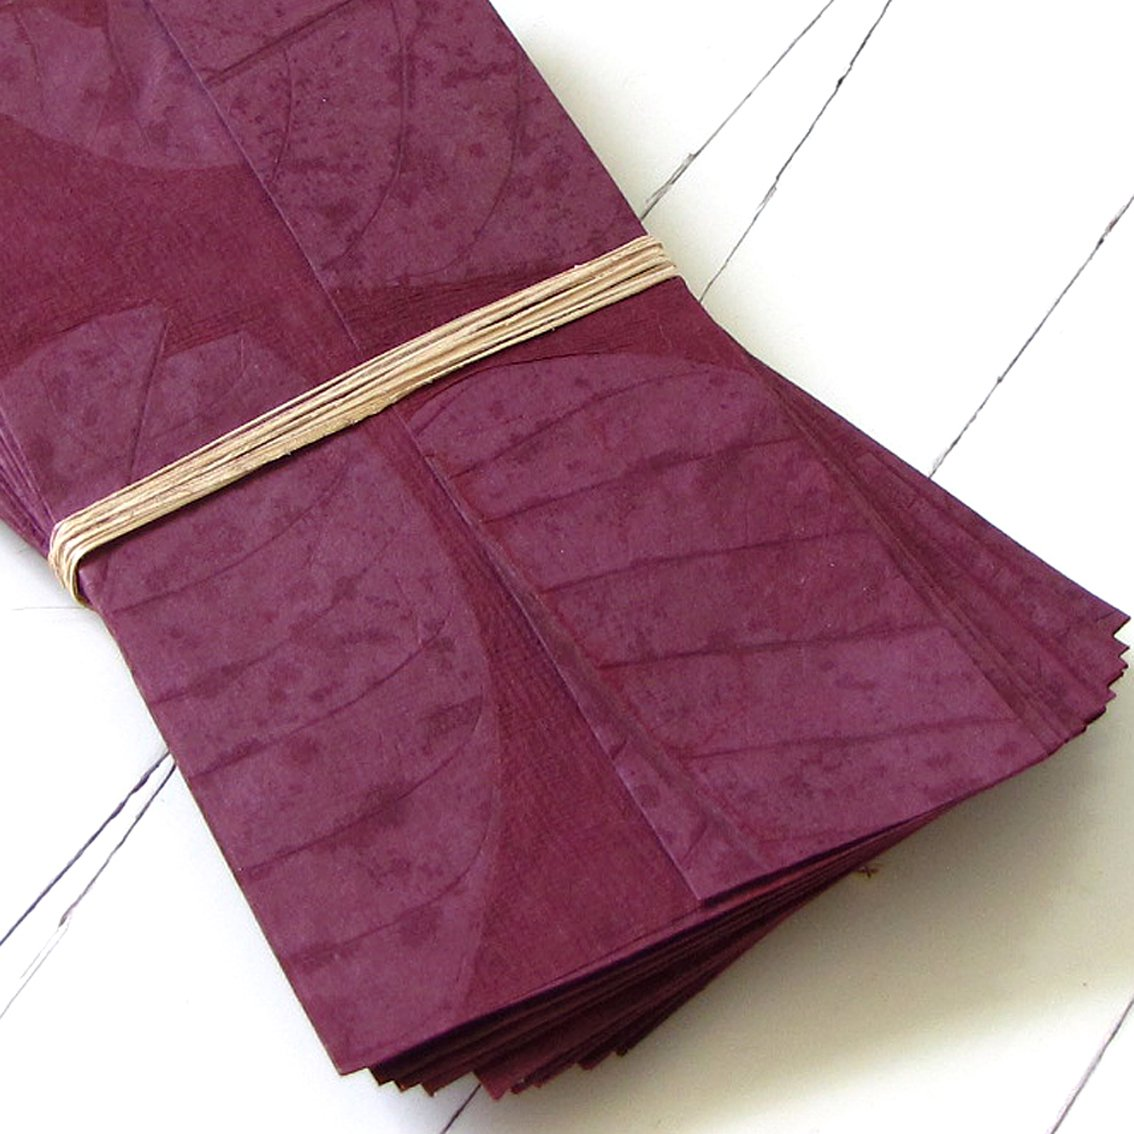 Handmade paper stationery eco friendly tree free leaf imprint paper dark plum and lavender